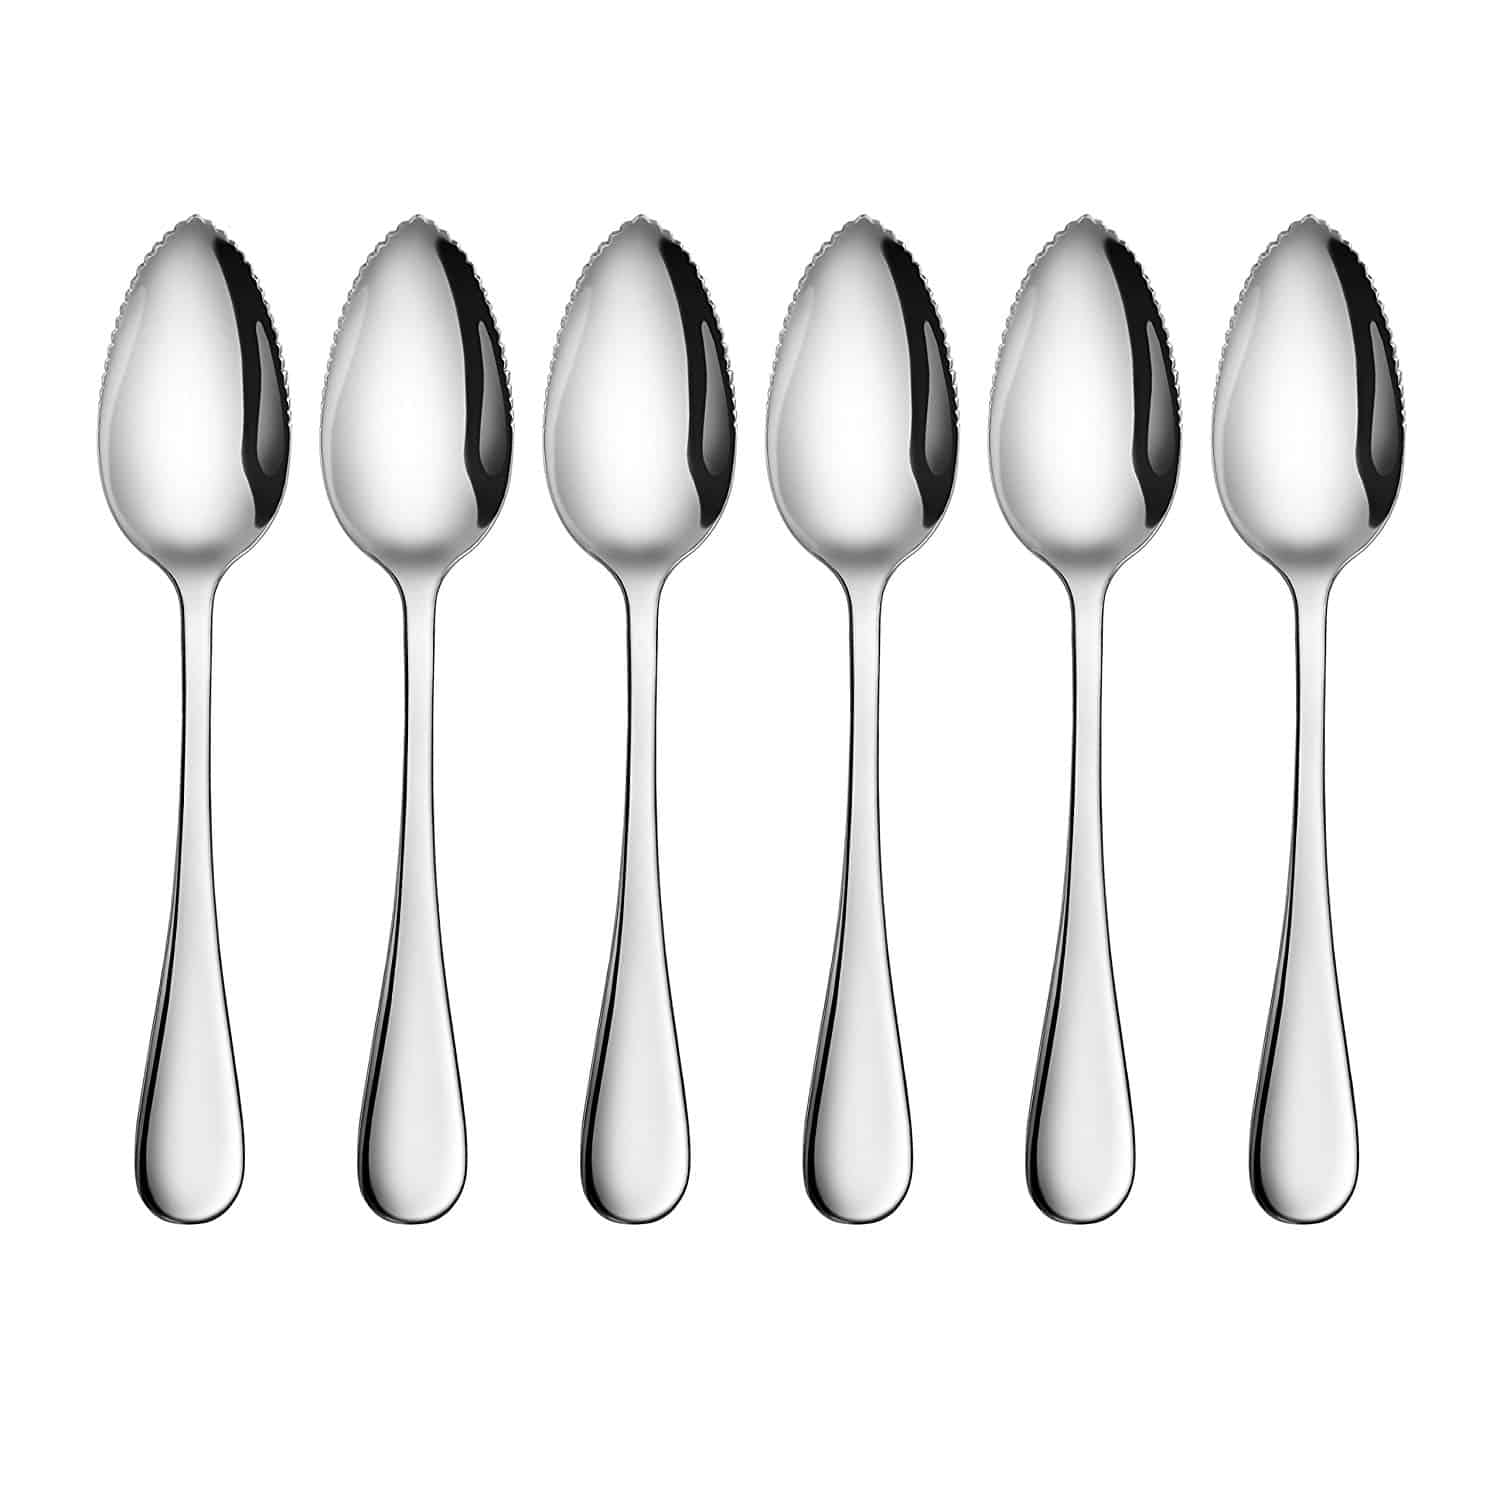 This 6-piece grapefruit dessert spoons is made from 18/10 stainless steel with extra thick ergonomics handle and its rain pattern is simple and elegant with reflective mirror finish.